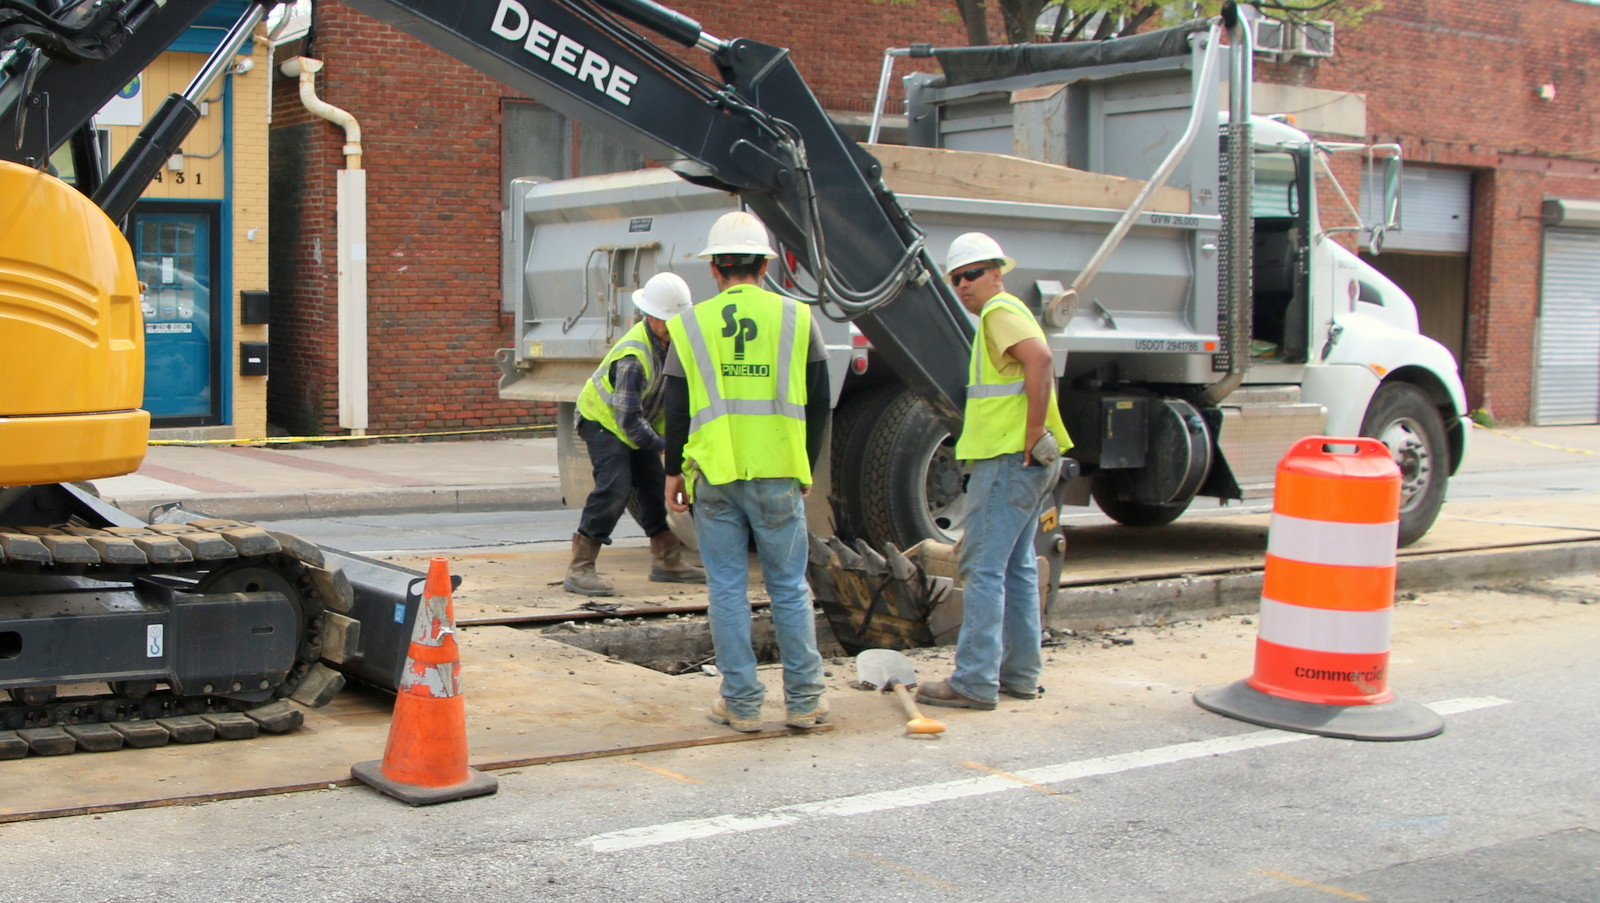 Spiniello company workers on Greenmount Avenue s part of an overhaul of Baltimore's underground conduits. (Fern Shen)